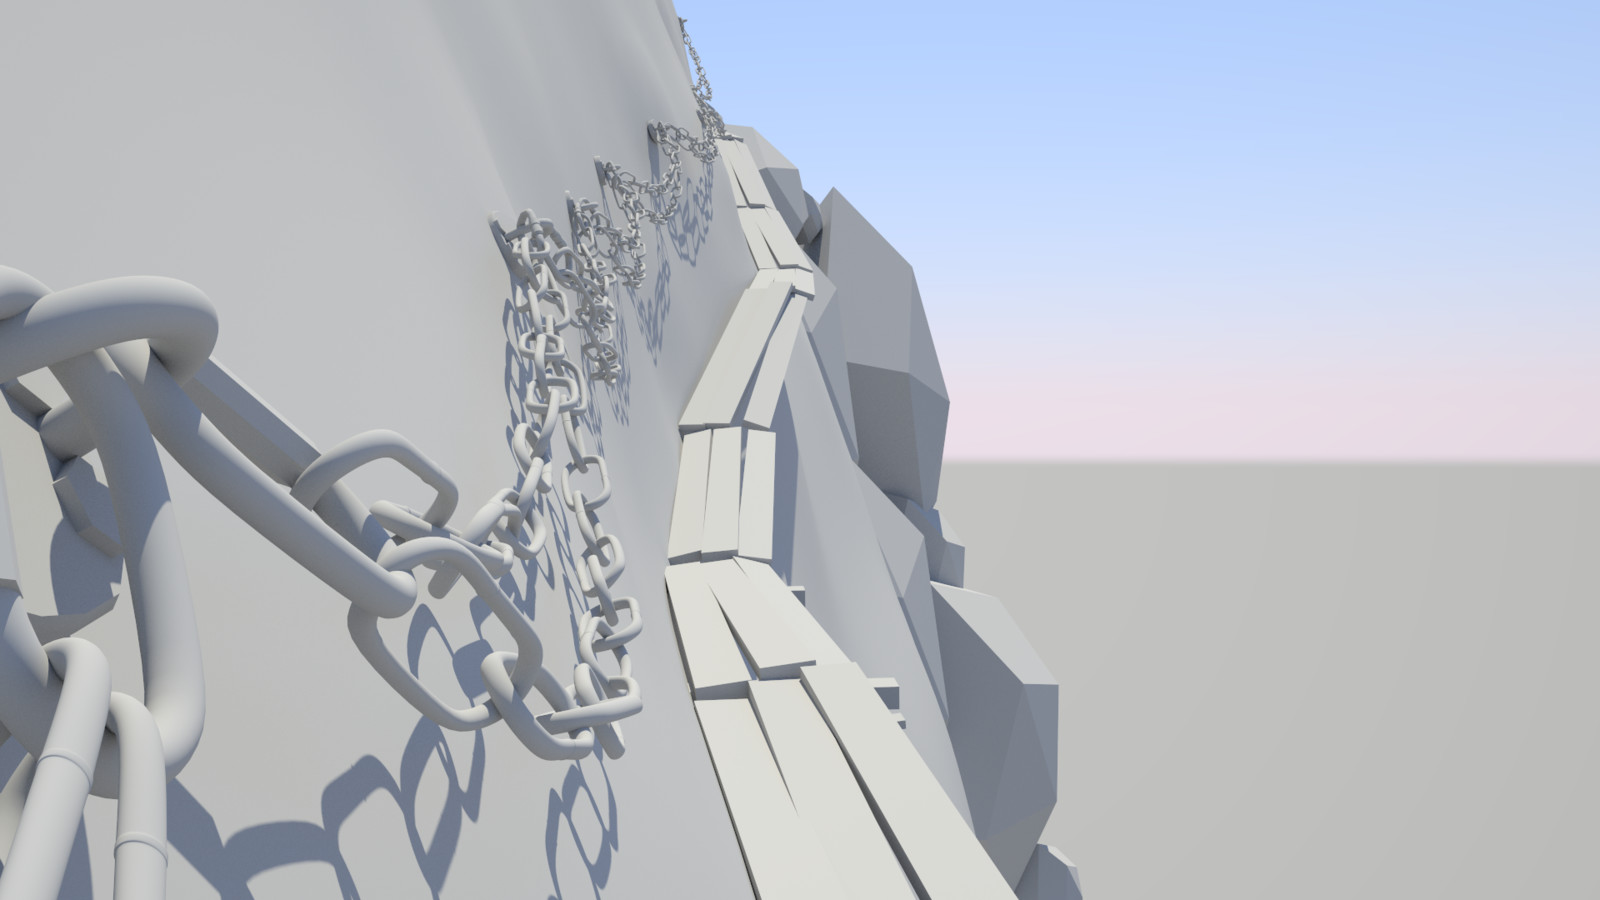 Roughing out the placement and basic lighting in Redshift.